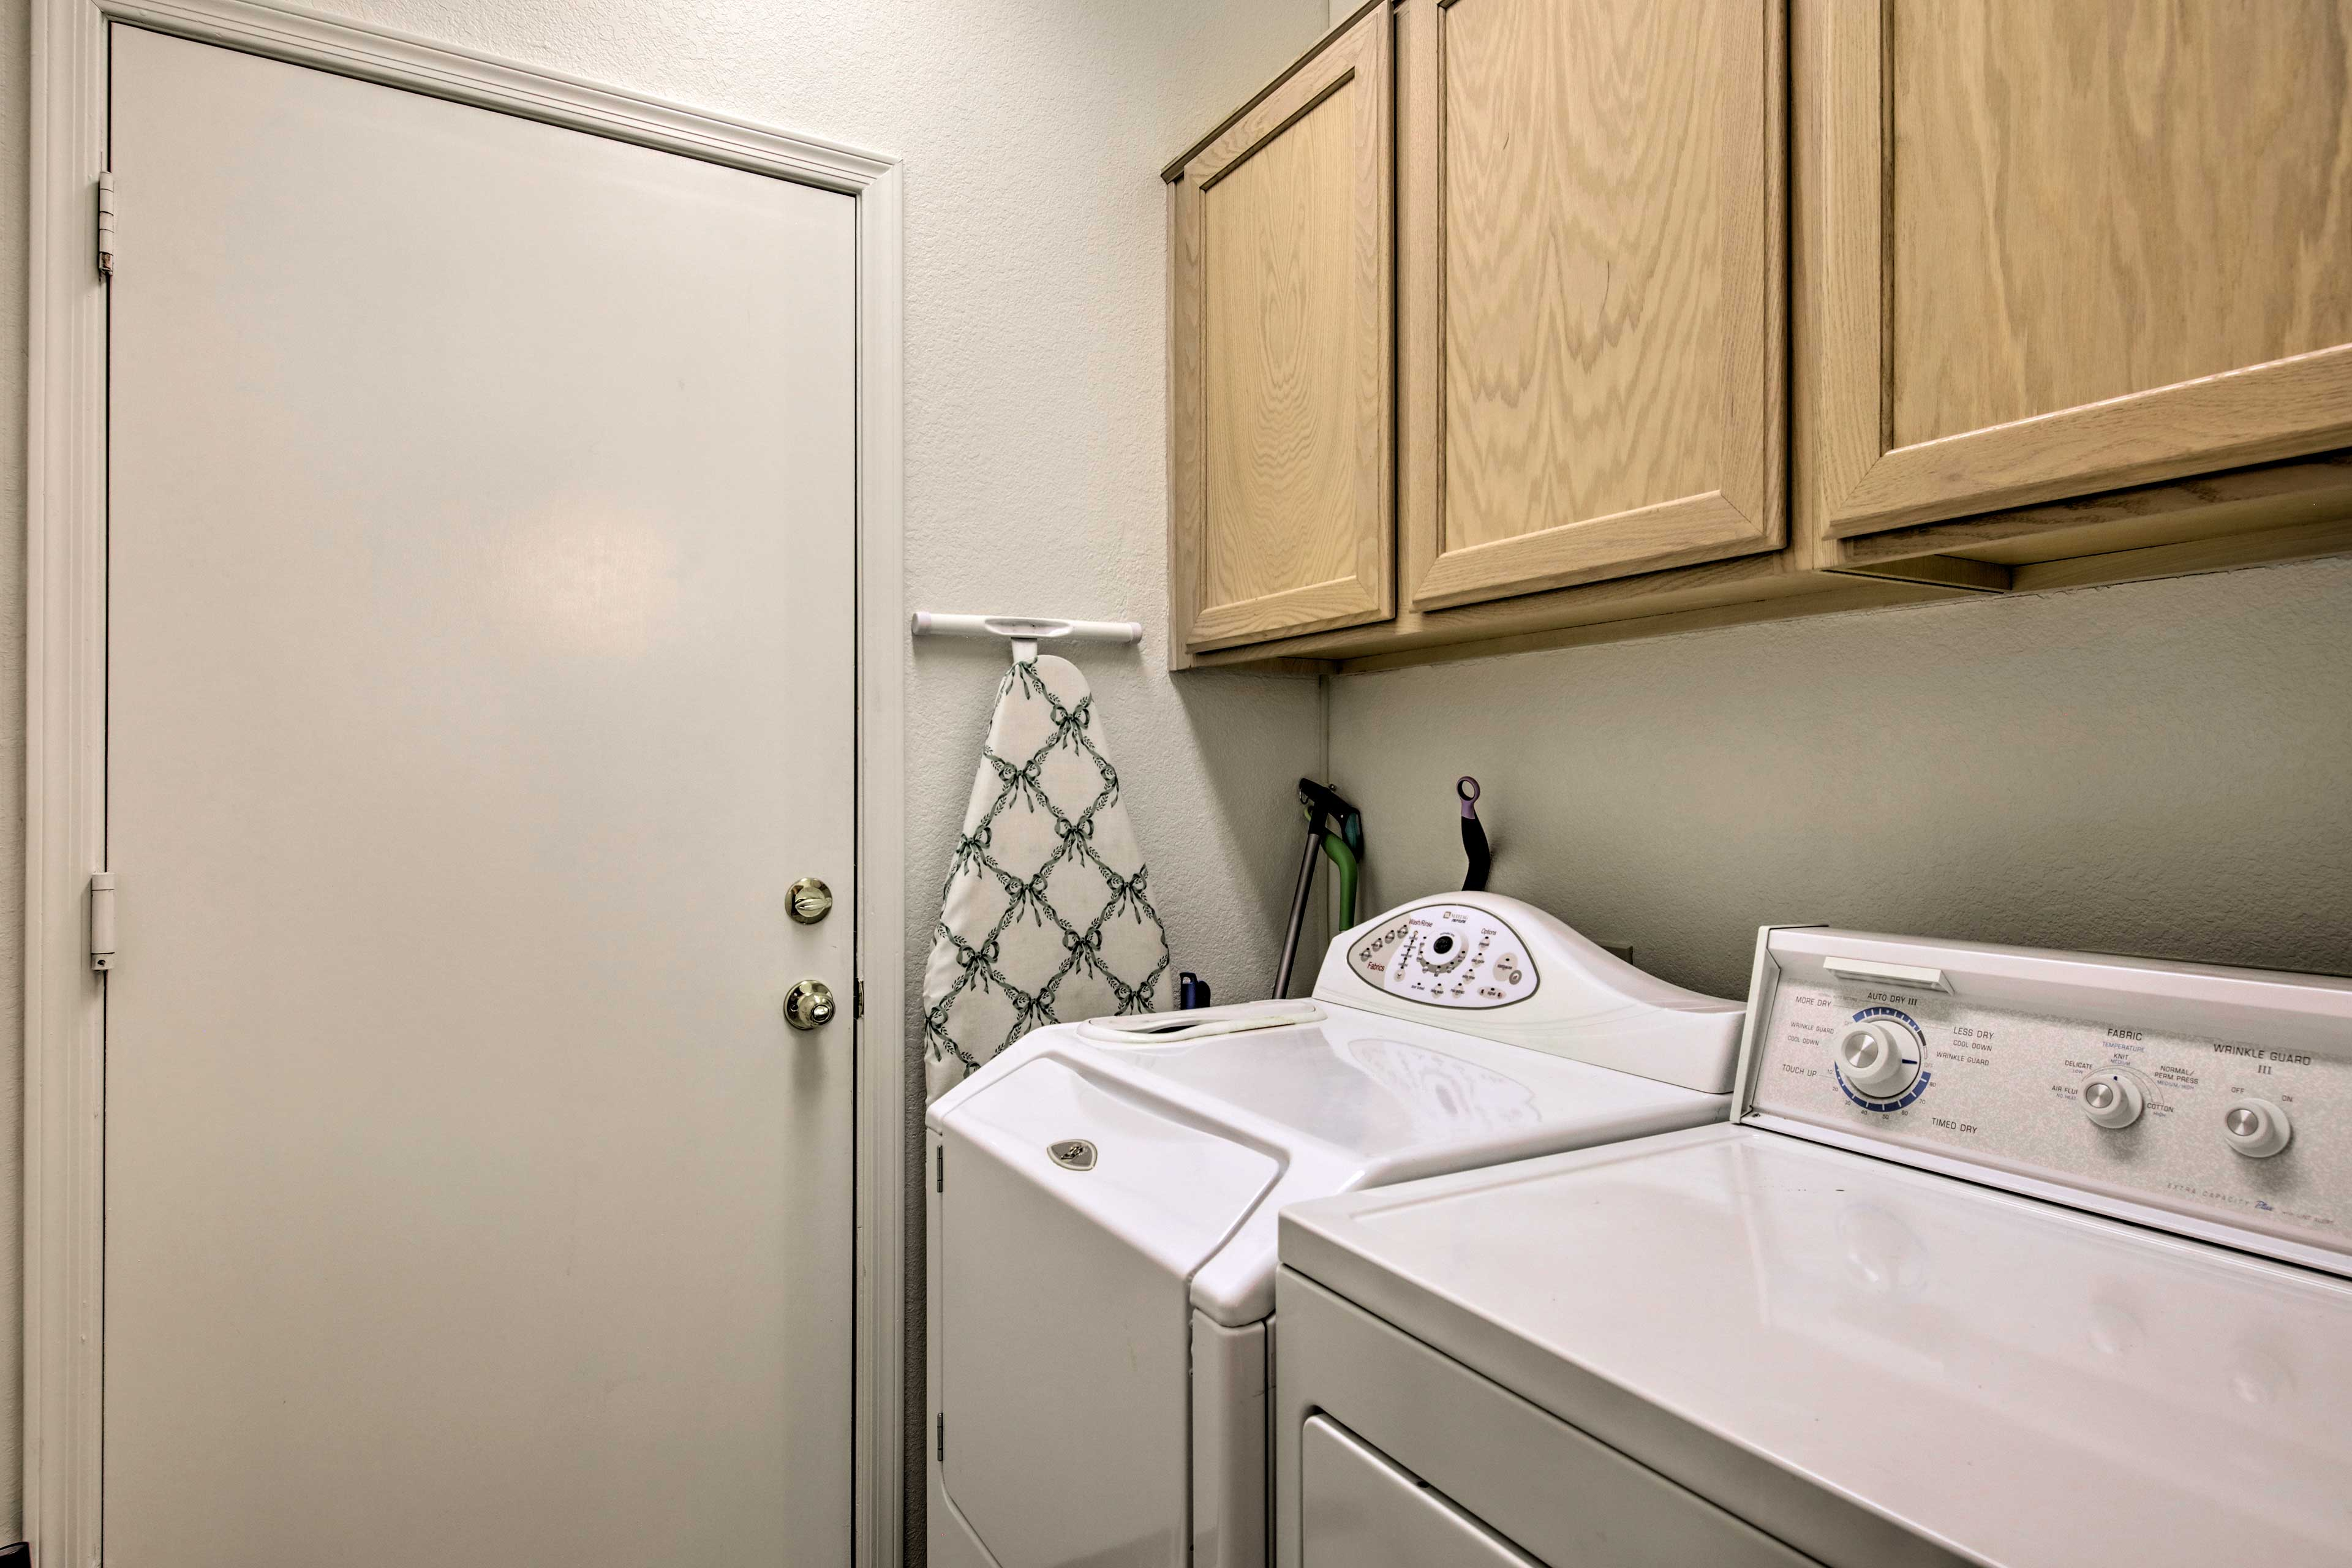 This vacation rental features a washer and dryer for your convenience.